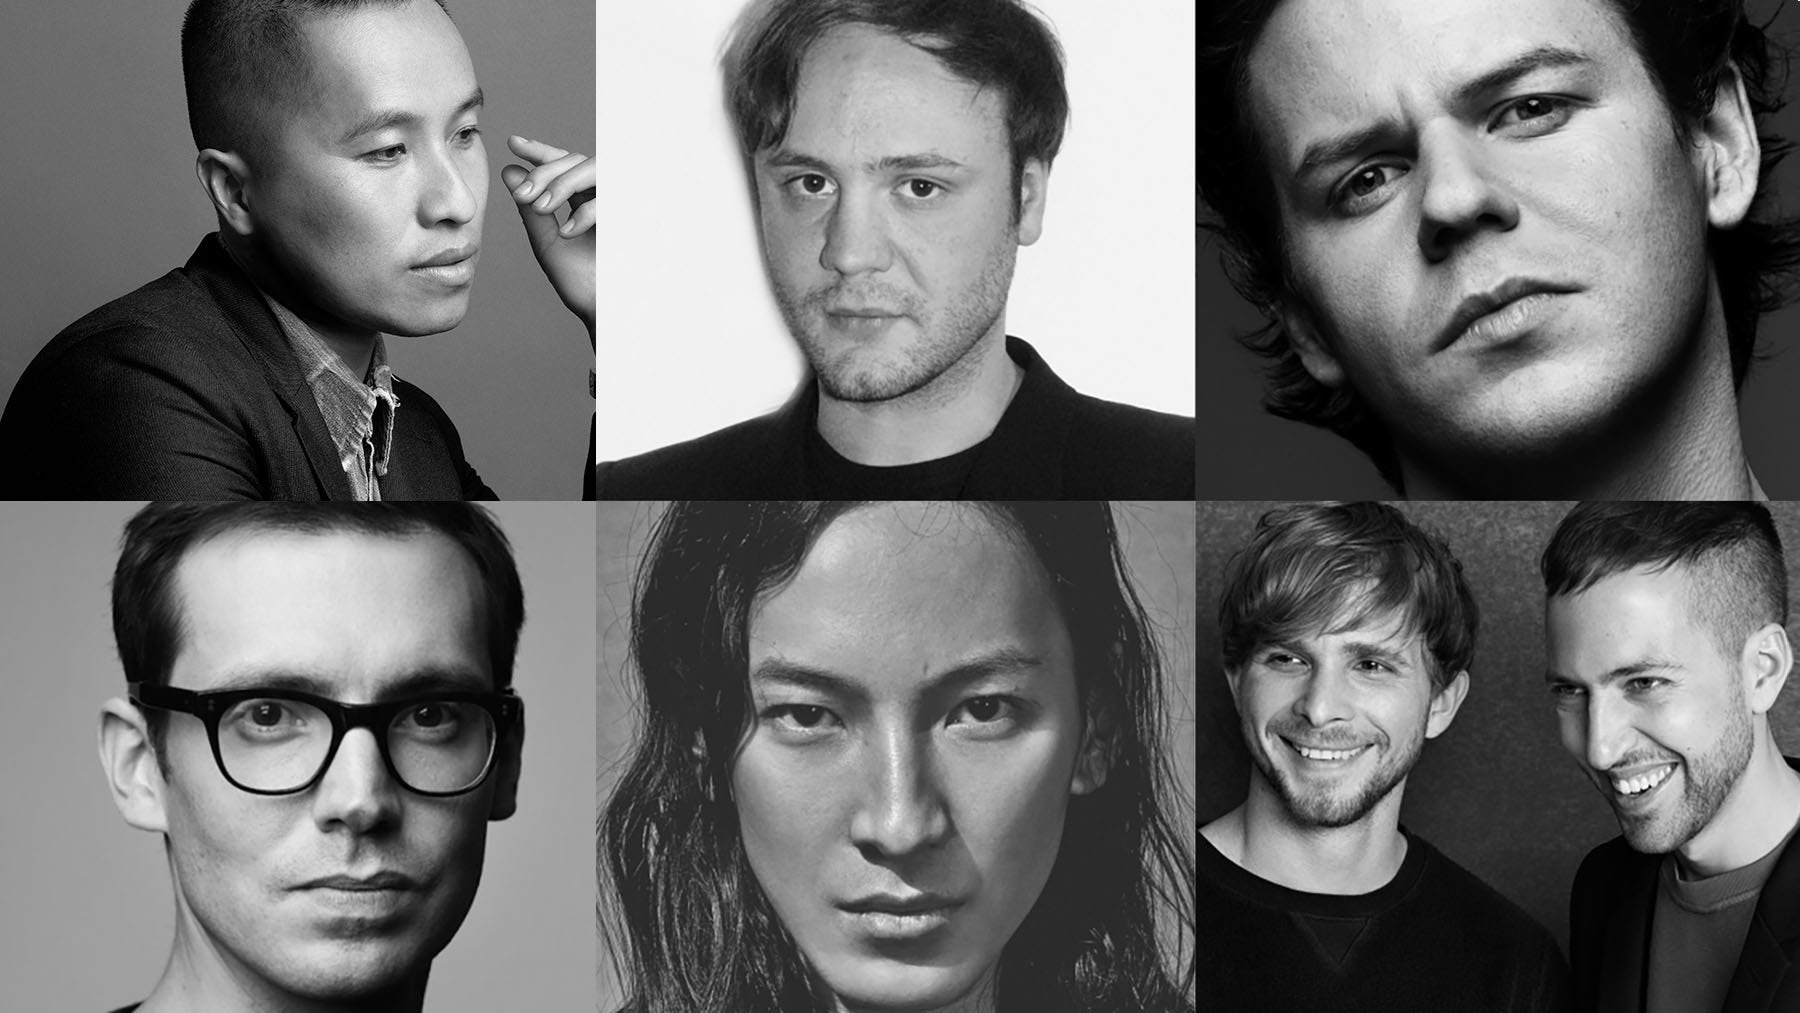 Seven Top Designers Share Their Best Business Advice